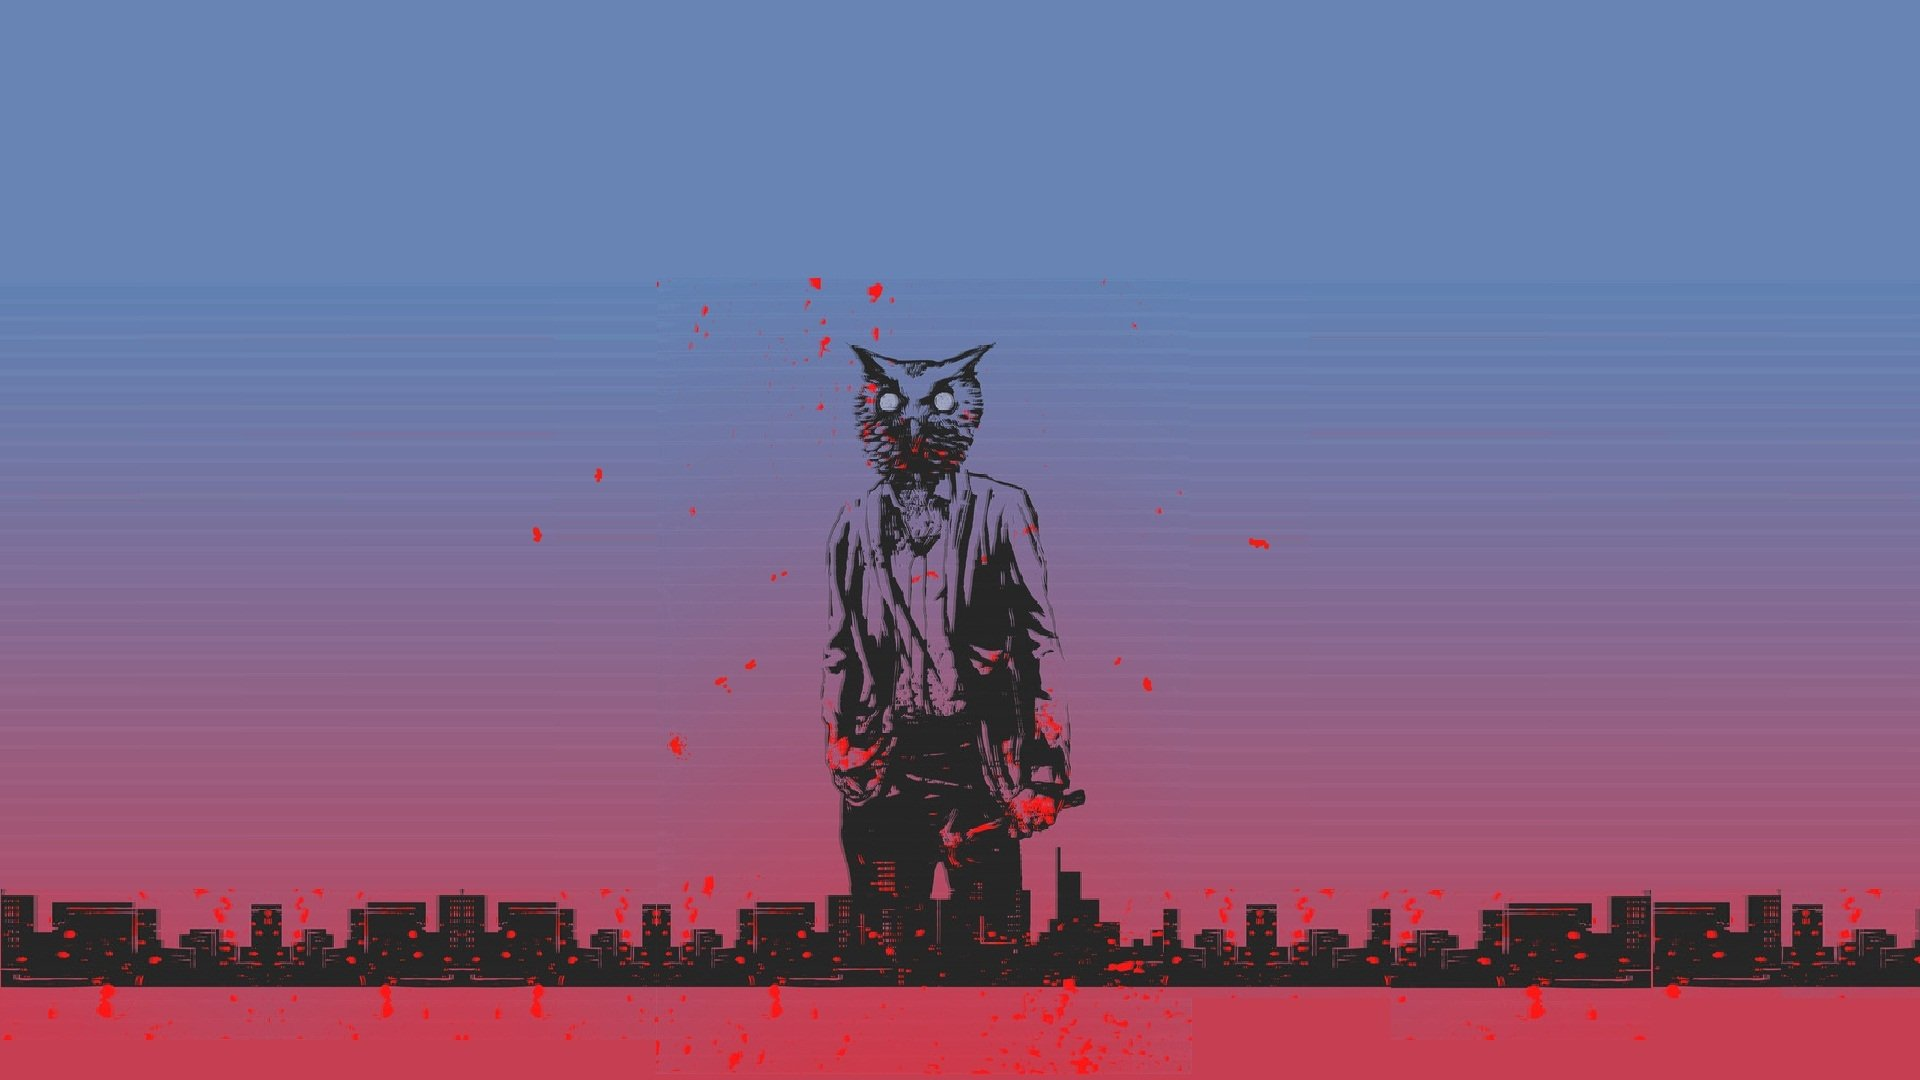 Hotline Miami 2: Wrong Number HD Wallpaper